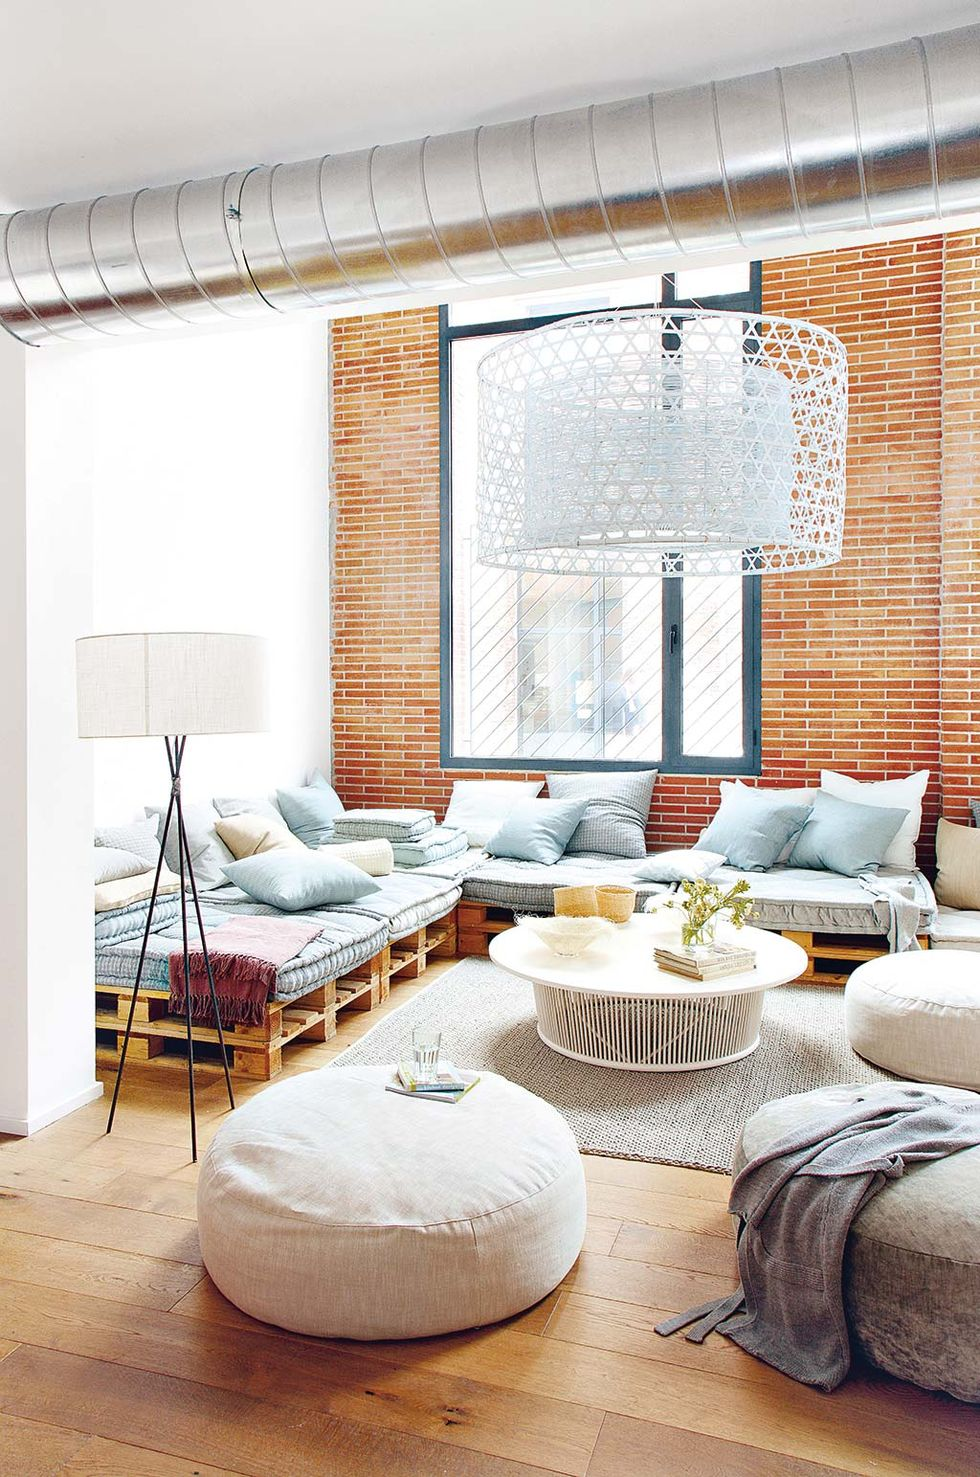 12 Ideas to Turn Out Your Living Area Into Your Comfort Zone